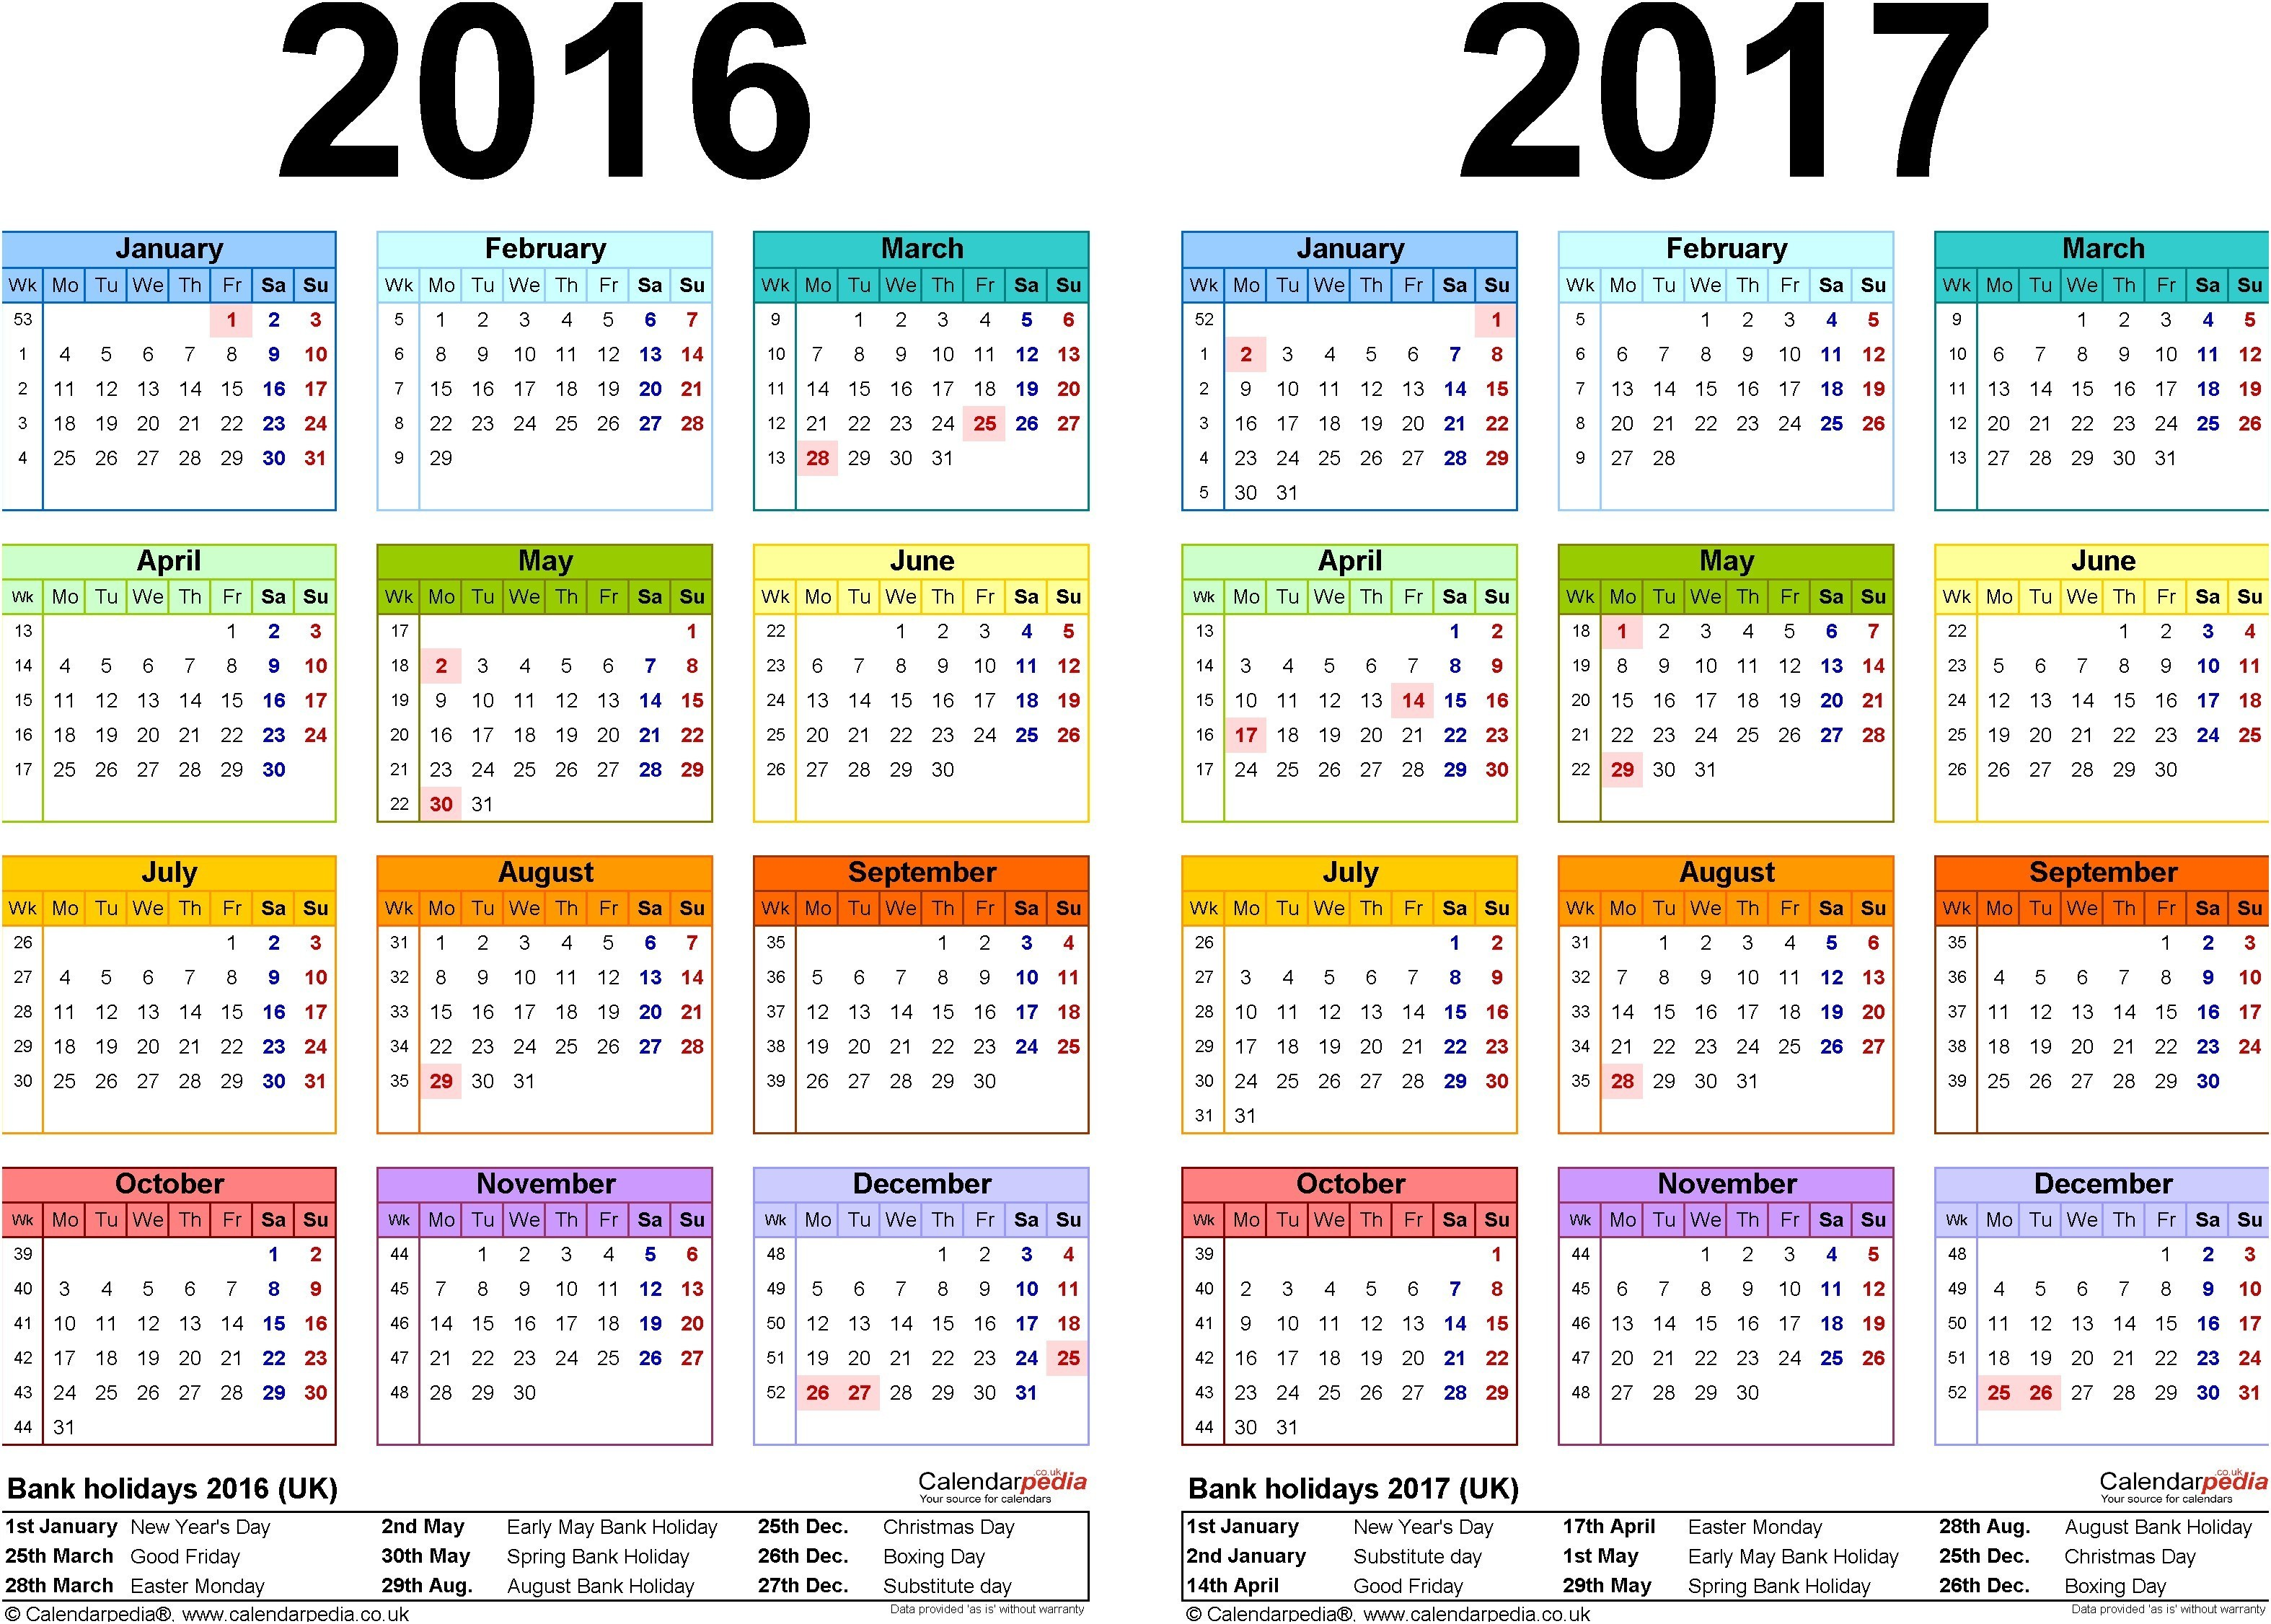 March 2018 Calendar Kalnirnay Más Populares Info Intended for Feb 2019 Calendar Kalnirnay Calendar Online 2019 Of March 2018 Calendar Kalnirnay Más Arriba-a-fecha March Calendar 2015 Blank September 2016 Calendar Free to and Print